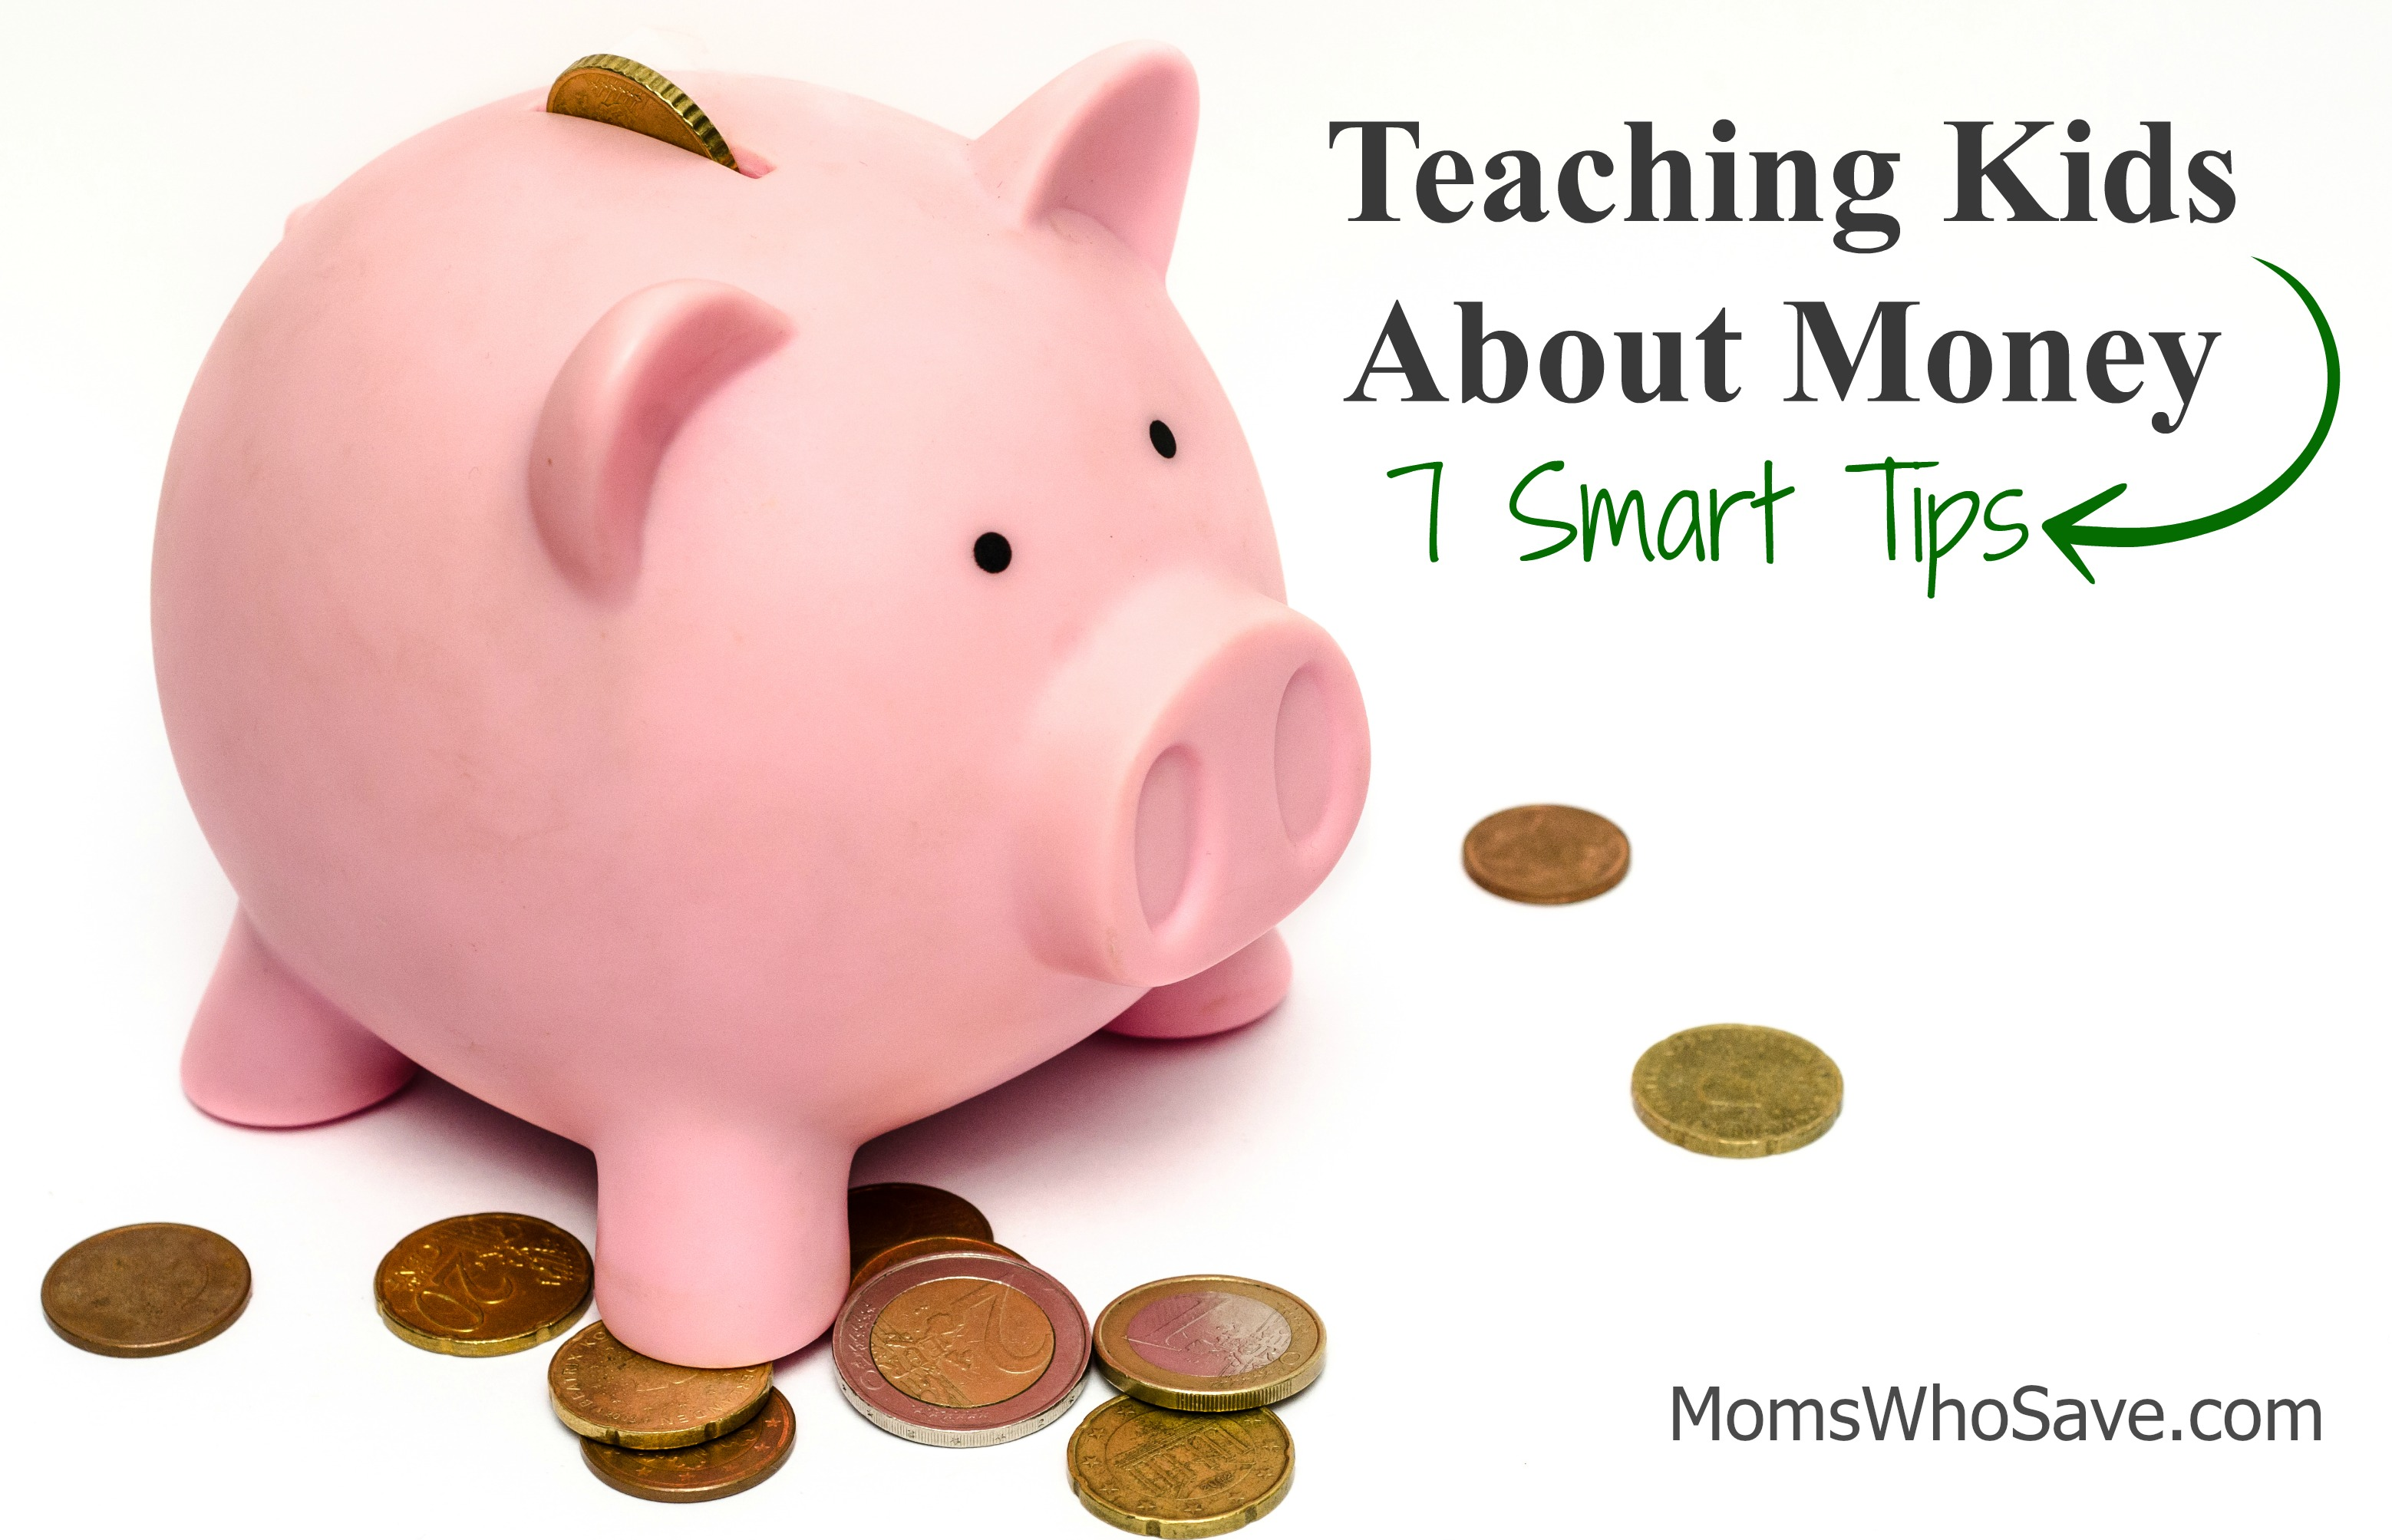 Teaching Kids About Money — 7 Smart Tips